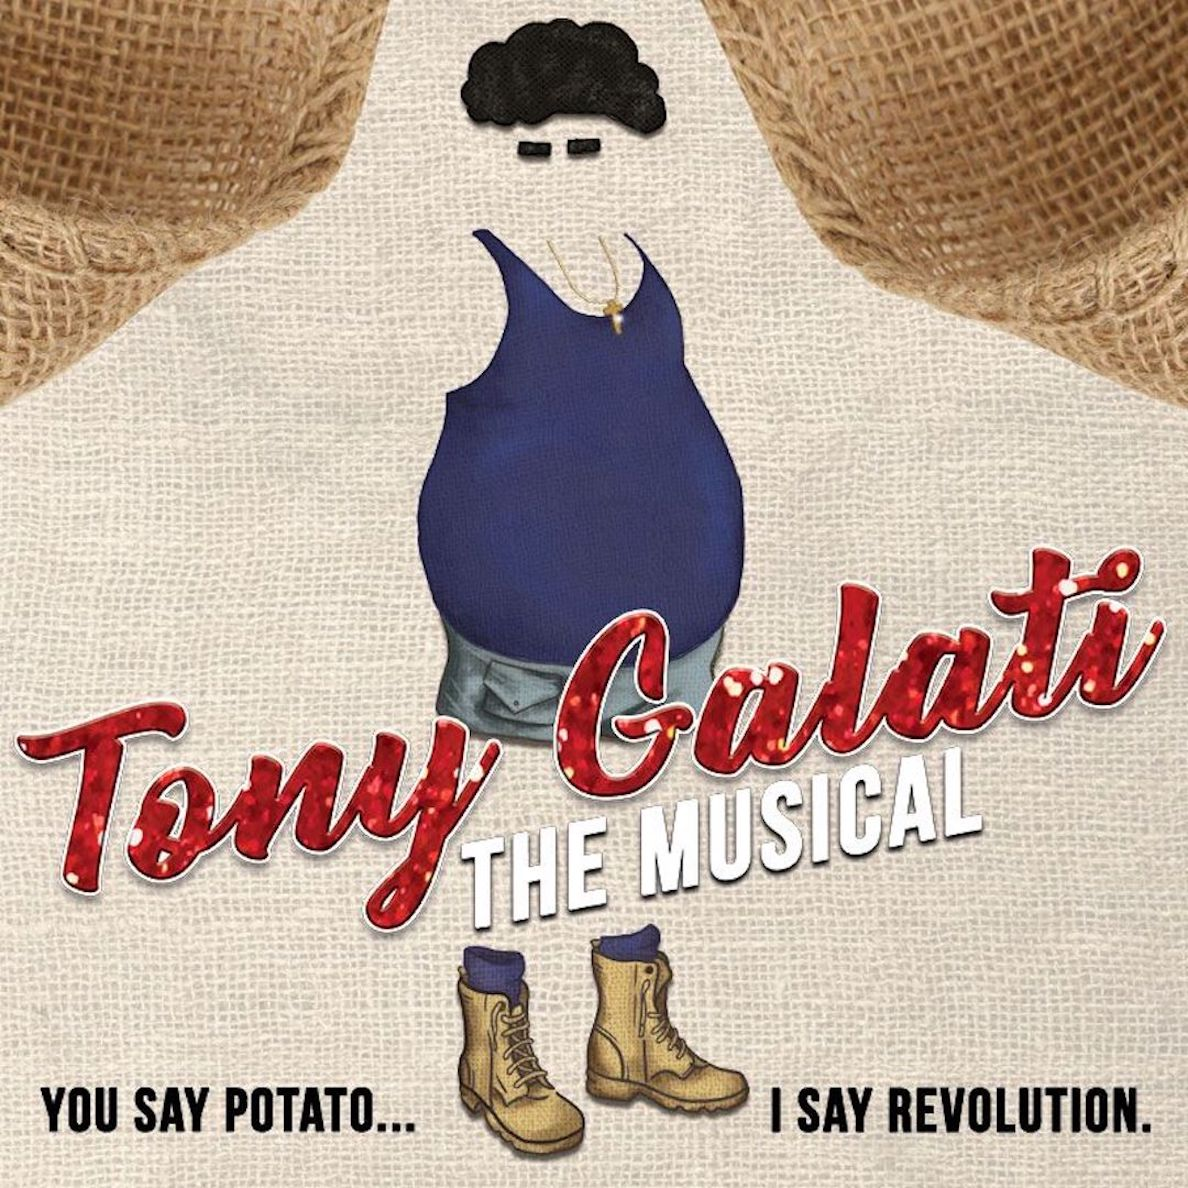 20_Tony Galati The Musical-square.jpg